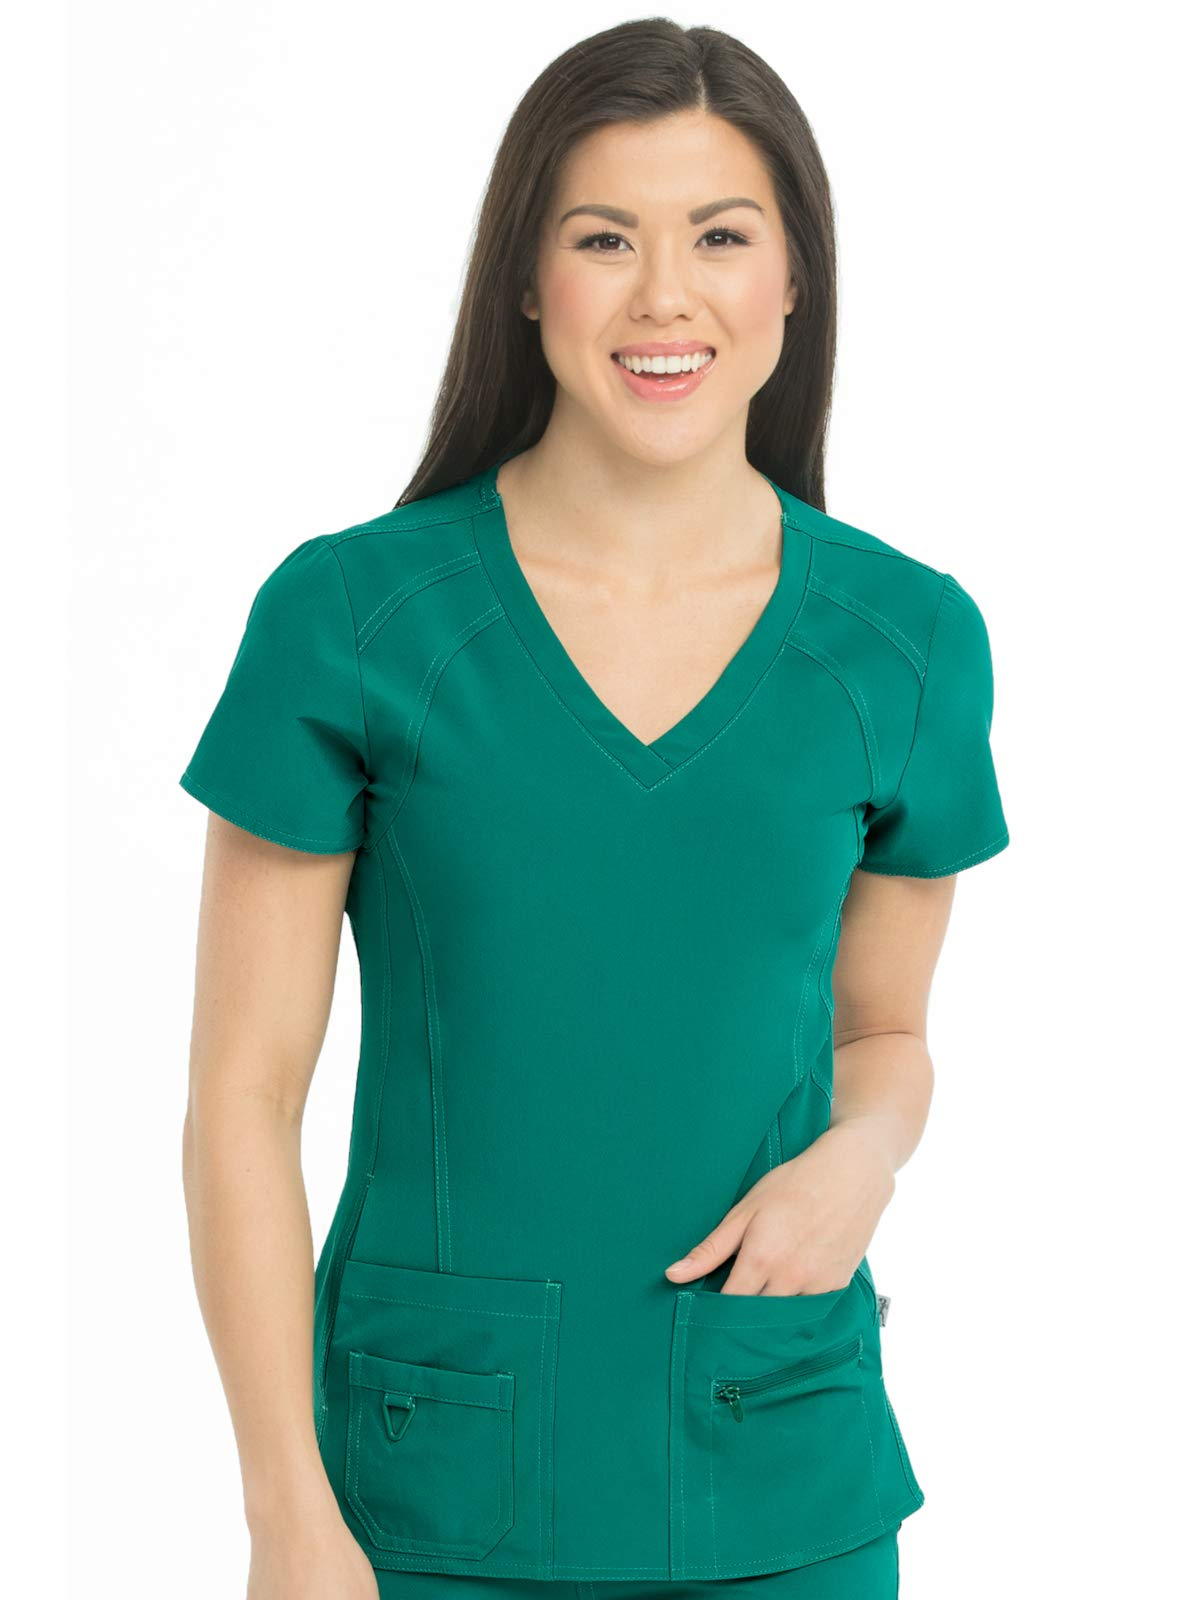 Med Couture Women's 'Activate' V-Neck Refined Sport Knit Scrub Top, Hunter, Large by Med Couture